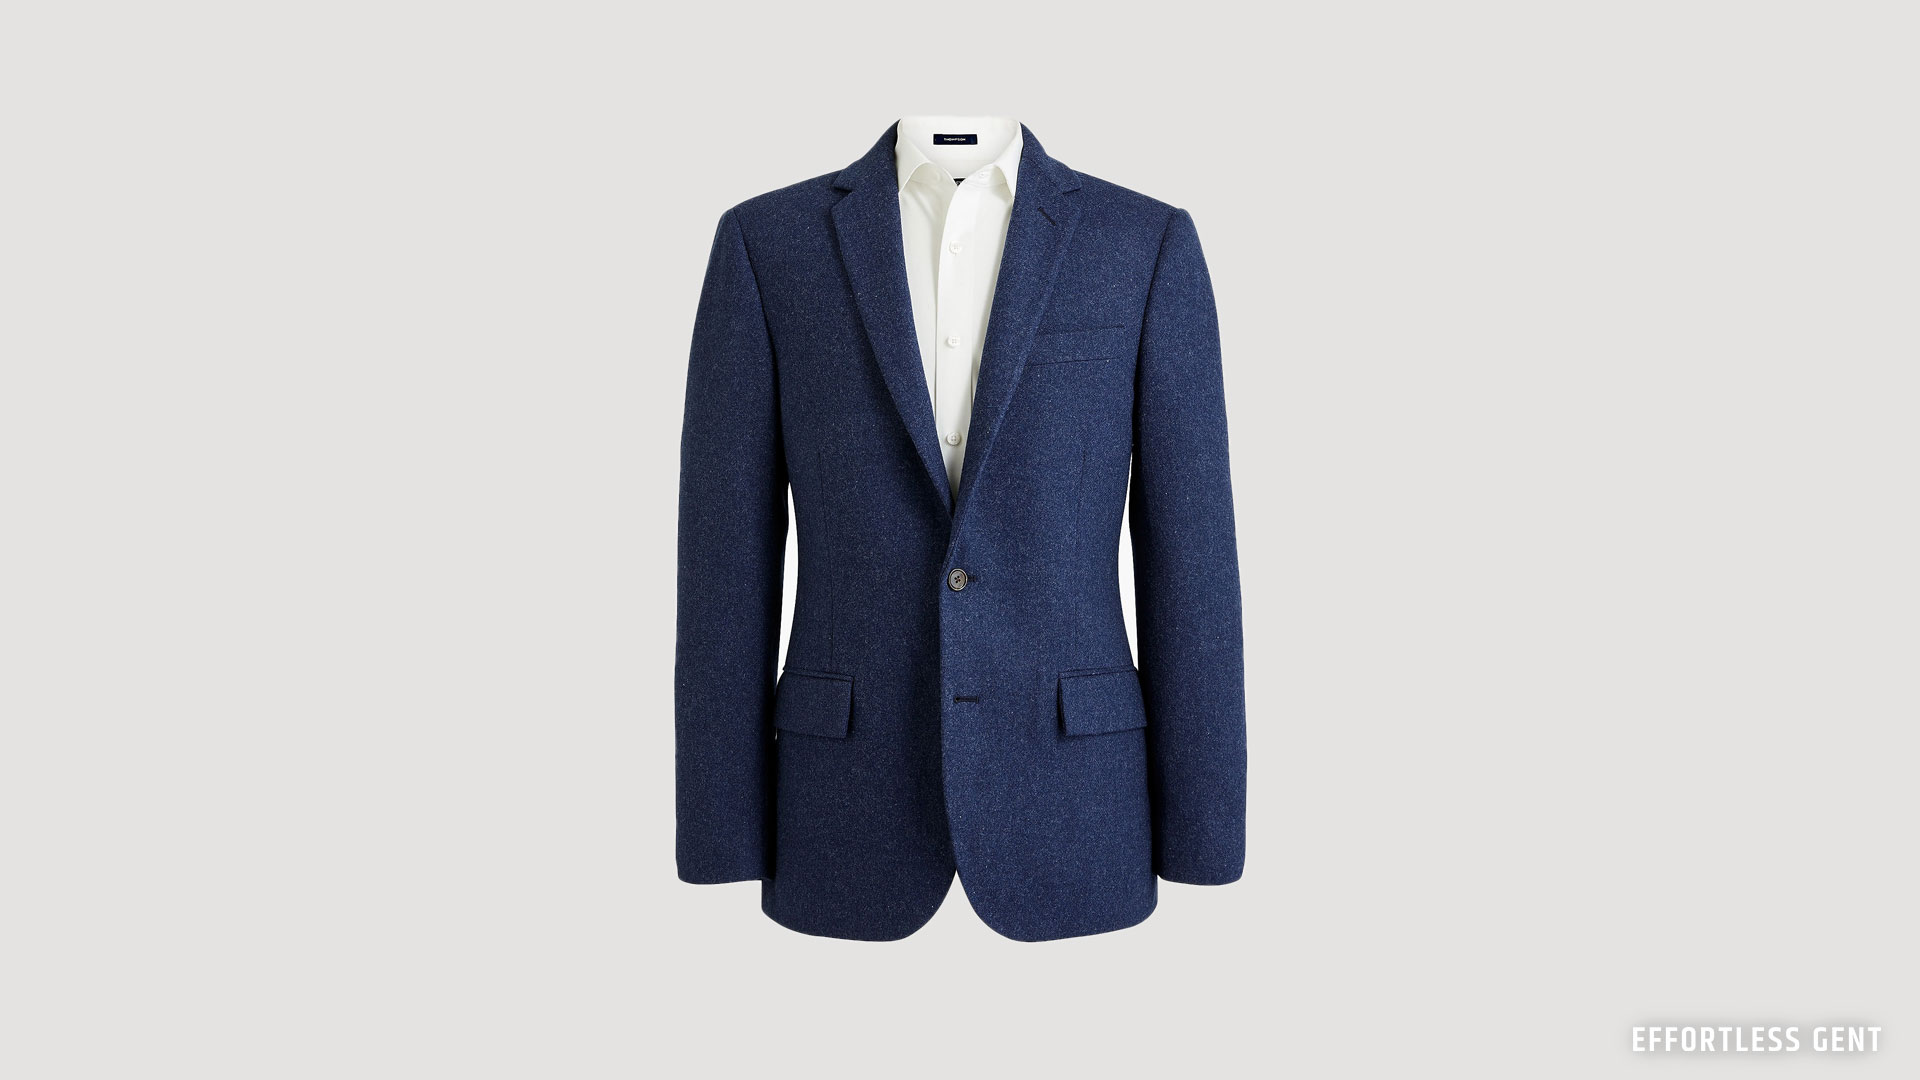 J.Crew Thompson sport coat is perfect for the budget lean wardrobe